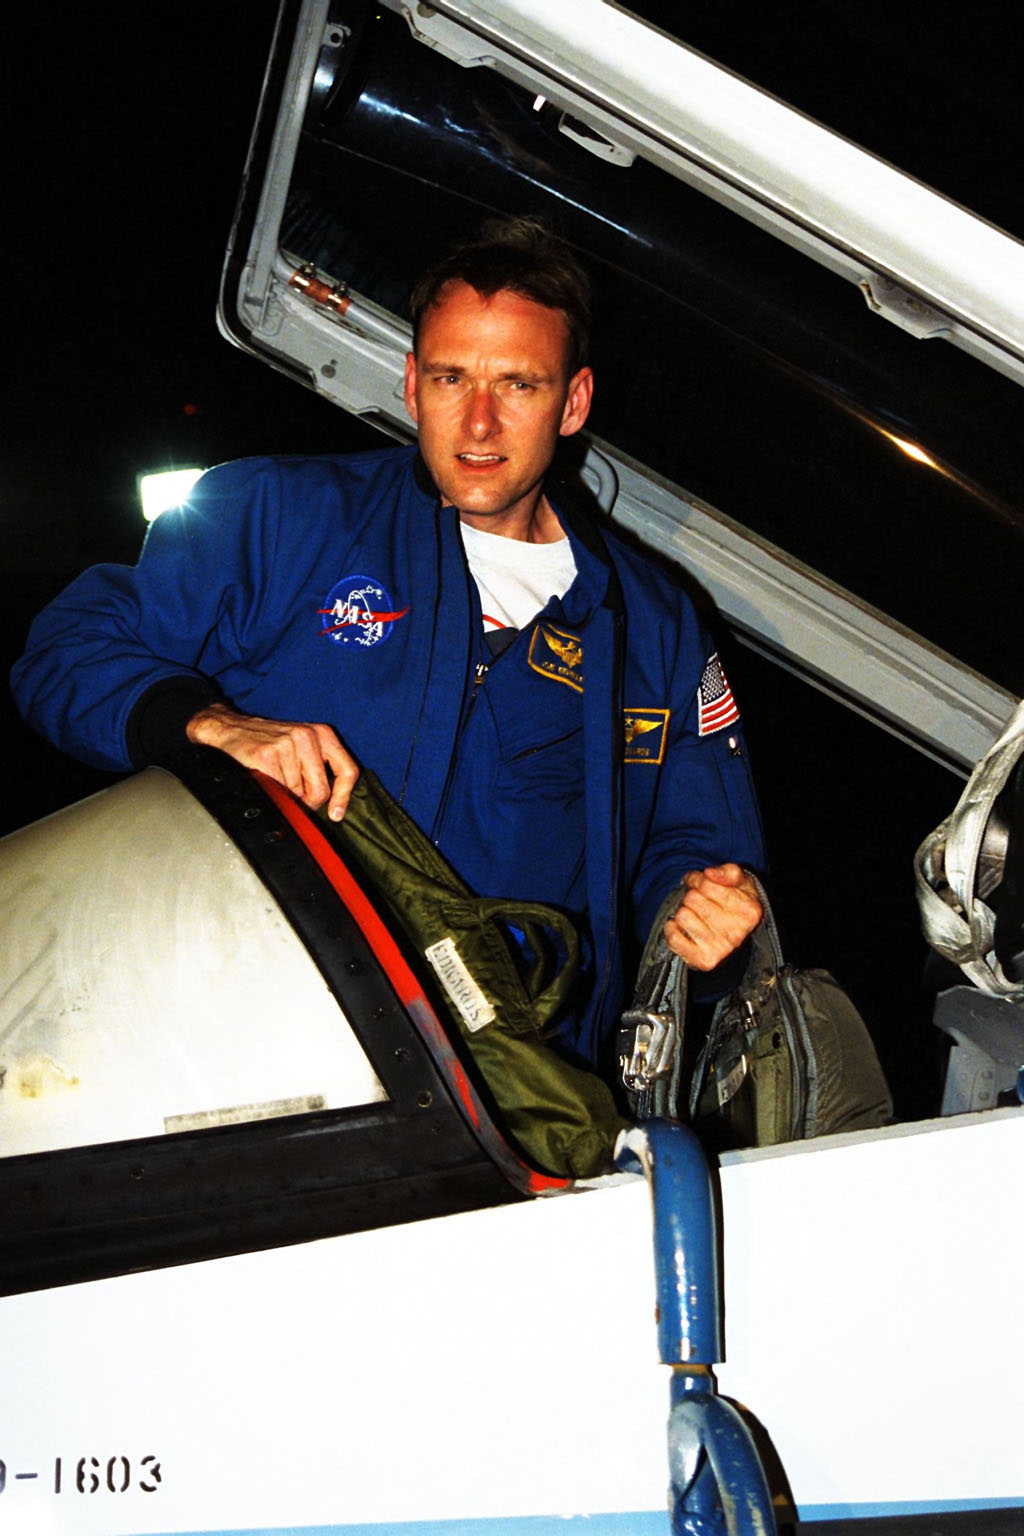 STS-89 Pilot Joe Edwards Jr., poses in his T-38 jet trainer after landing with other members of the flight crew at KSC?s Shuttle Landing Facility from NASA?s Johnson Space Center to begin Terminal Countdown Demonstration Test (TCDT) activities. The TCDT is held at KSC prior to each Space Shuttle flight to provide crews with the opportunity to participate in simulated countdown activities. Endeavour is targeted for launch of STS-89 on Jan. 22 at 9:48 p.m. EST, which will be the first mission of 1998 and the eighth to dock with Russia?s Mir Space Station. The mission is scheduled to last nine days